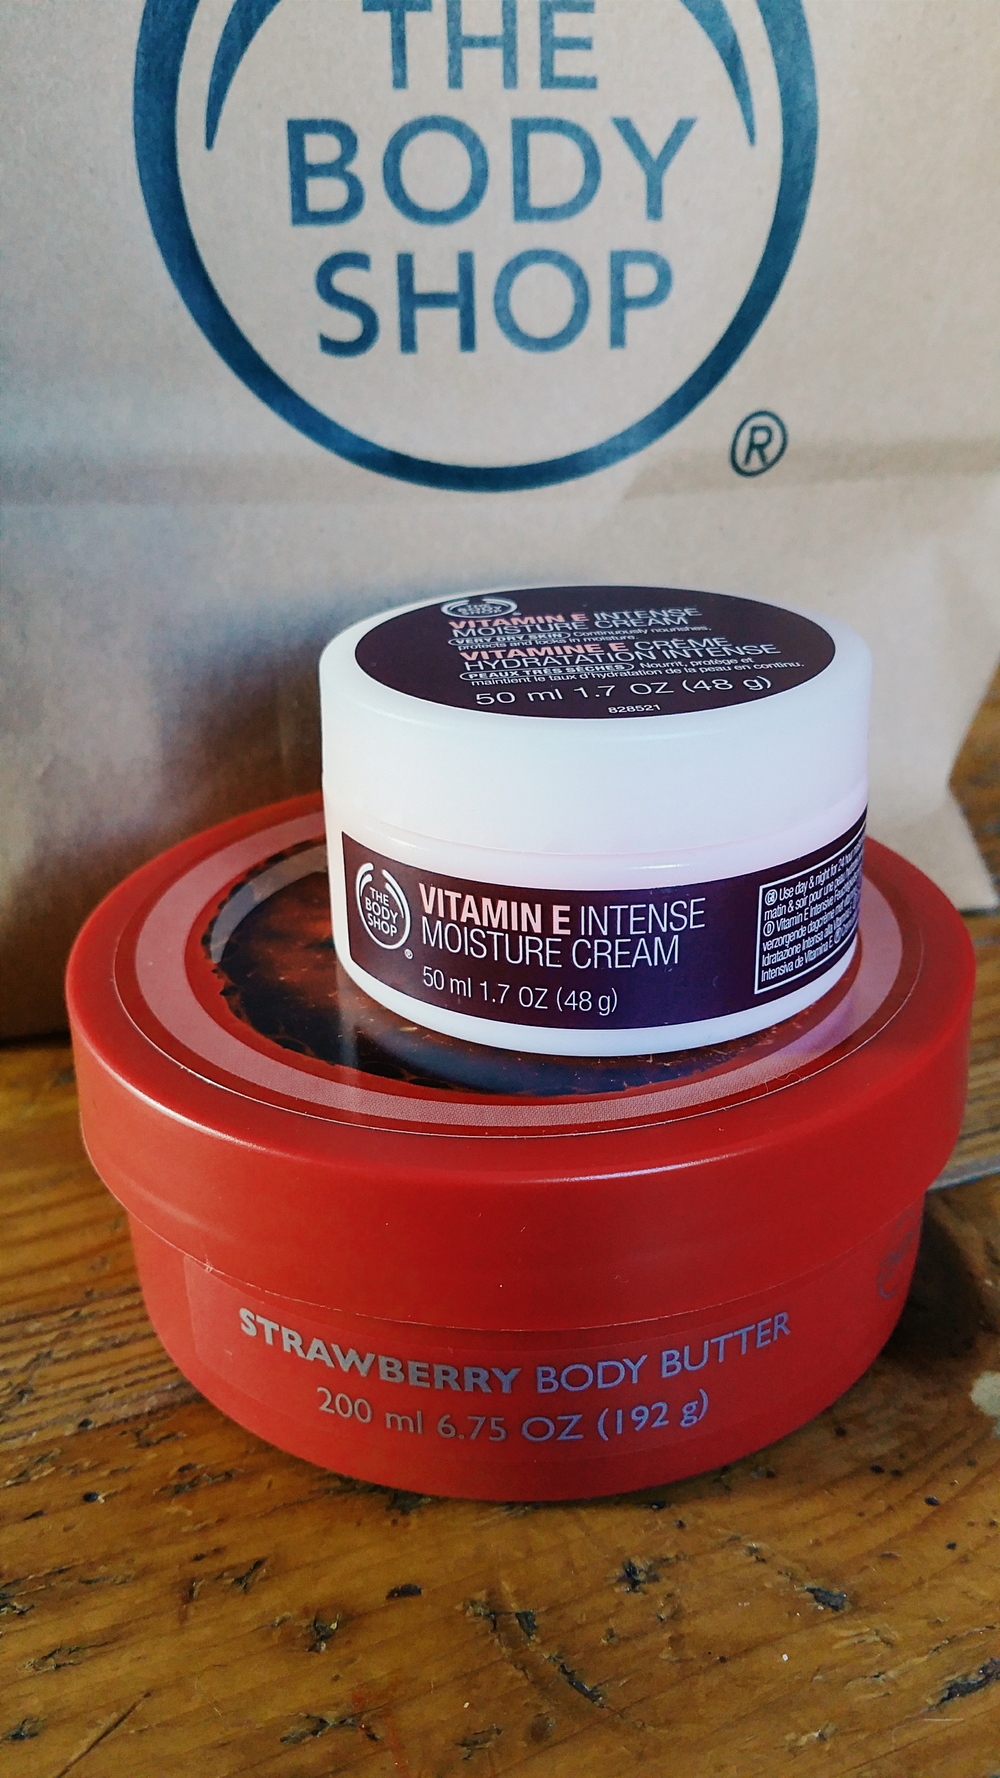 the strawberry body butter was just an extra :)